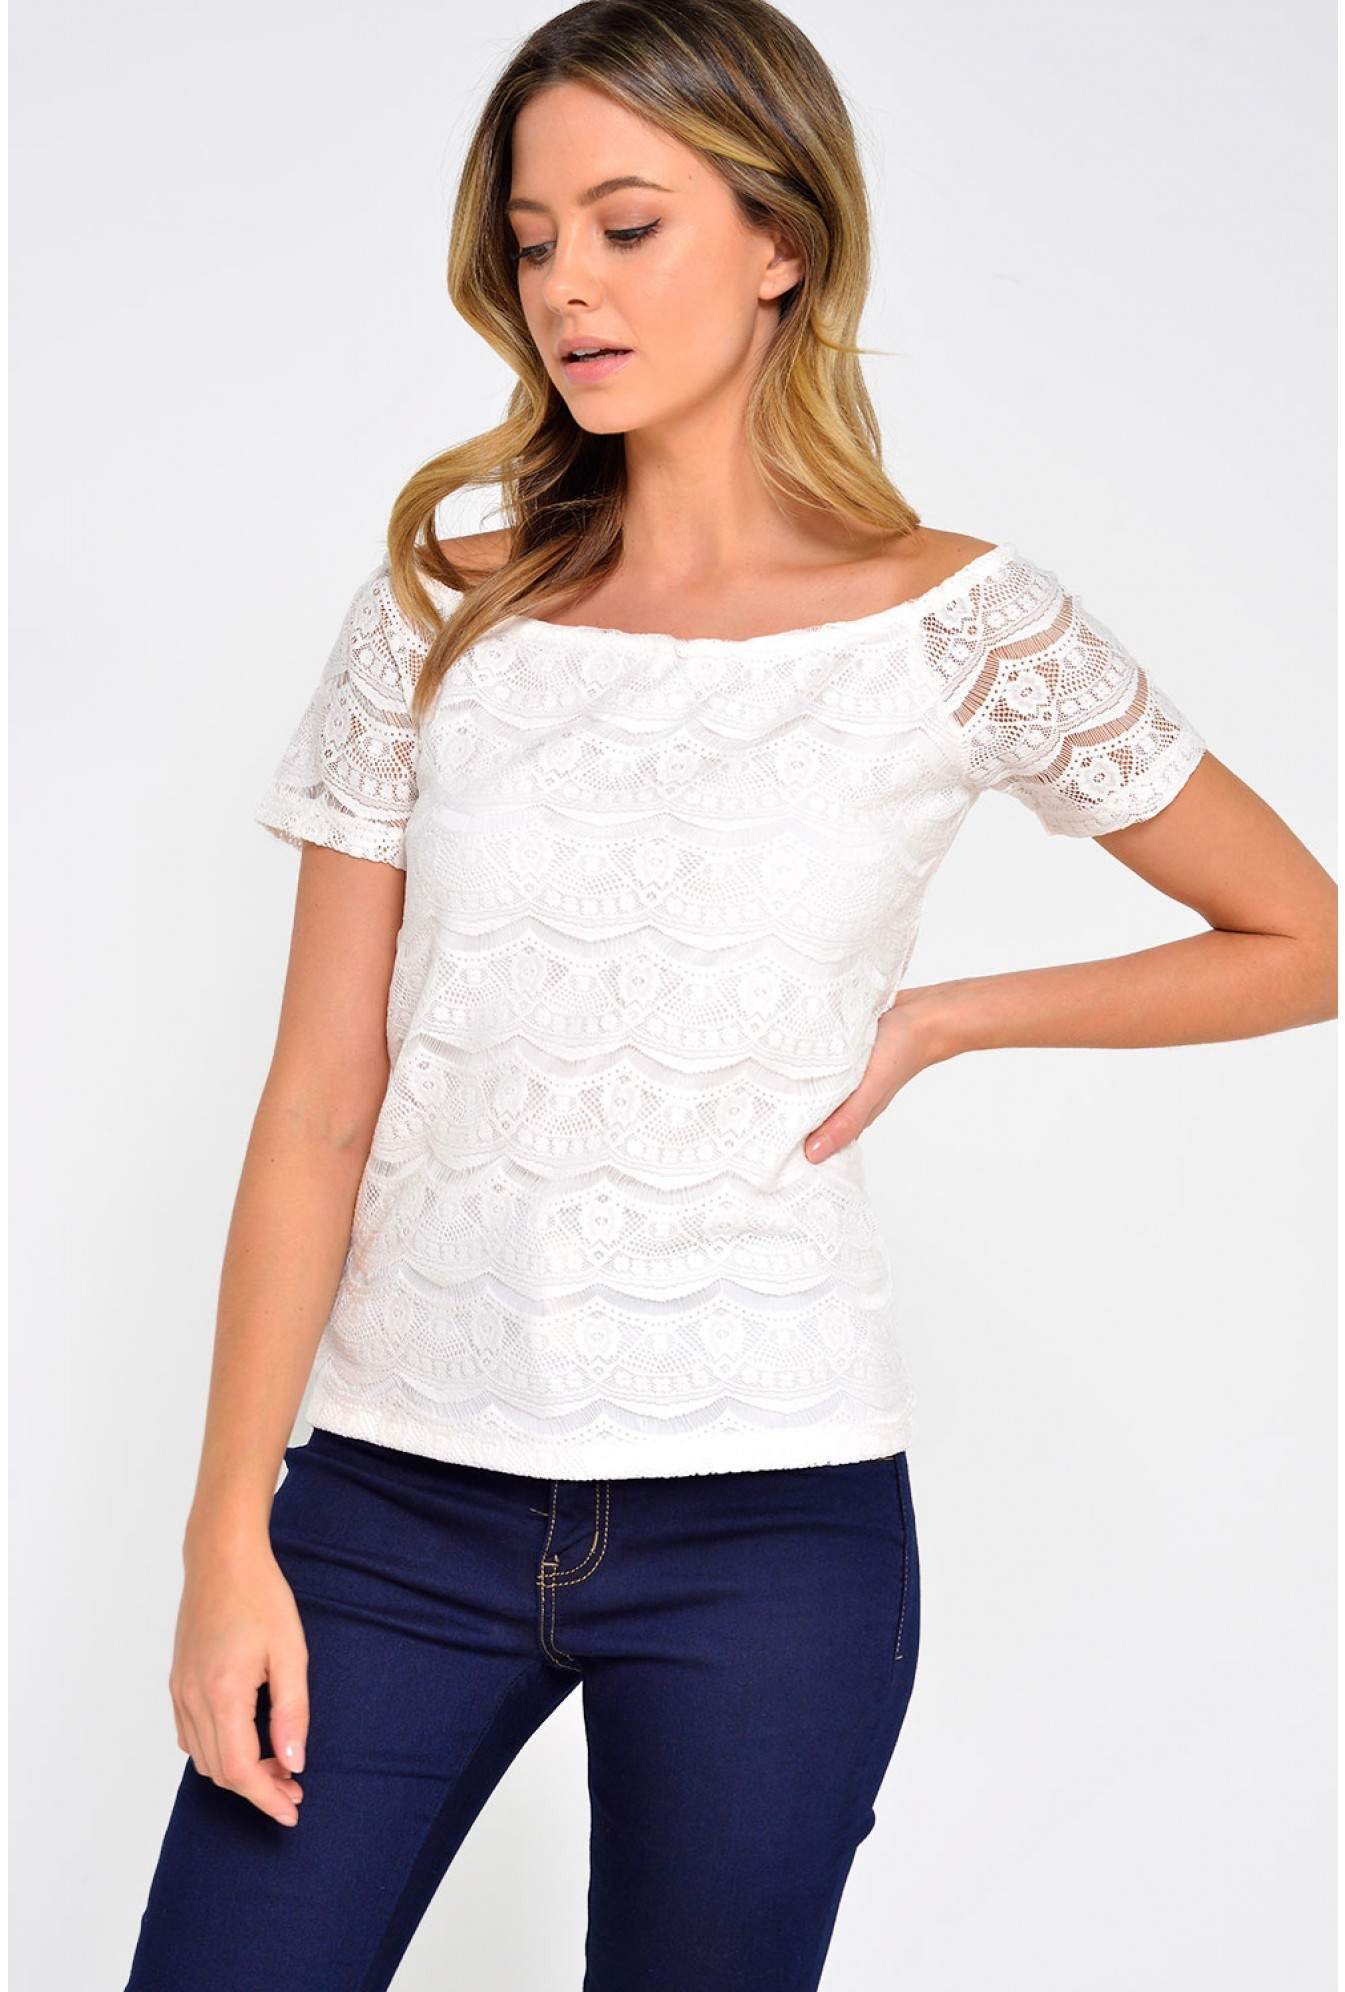 606cc18c9790f Vila Monie Lace Off Shoulder Top in White   iCLOTHING